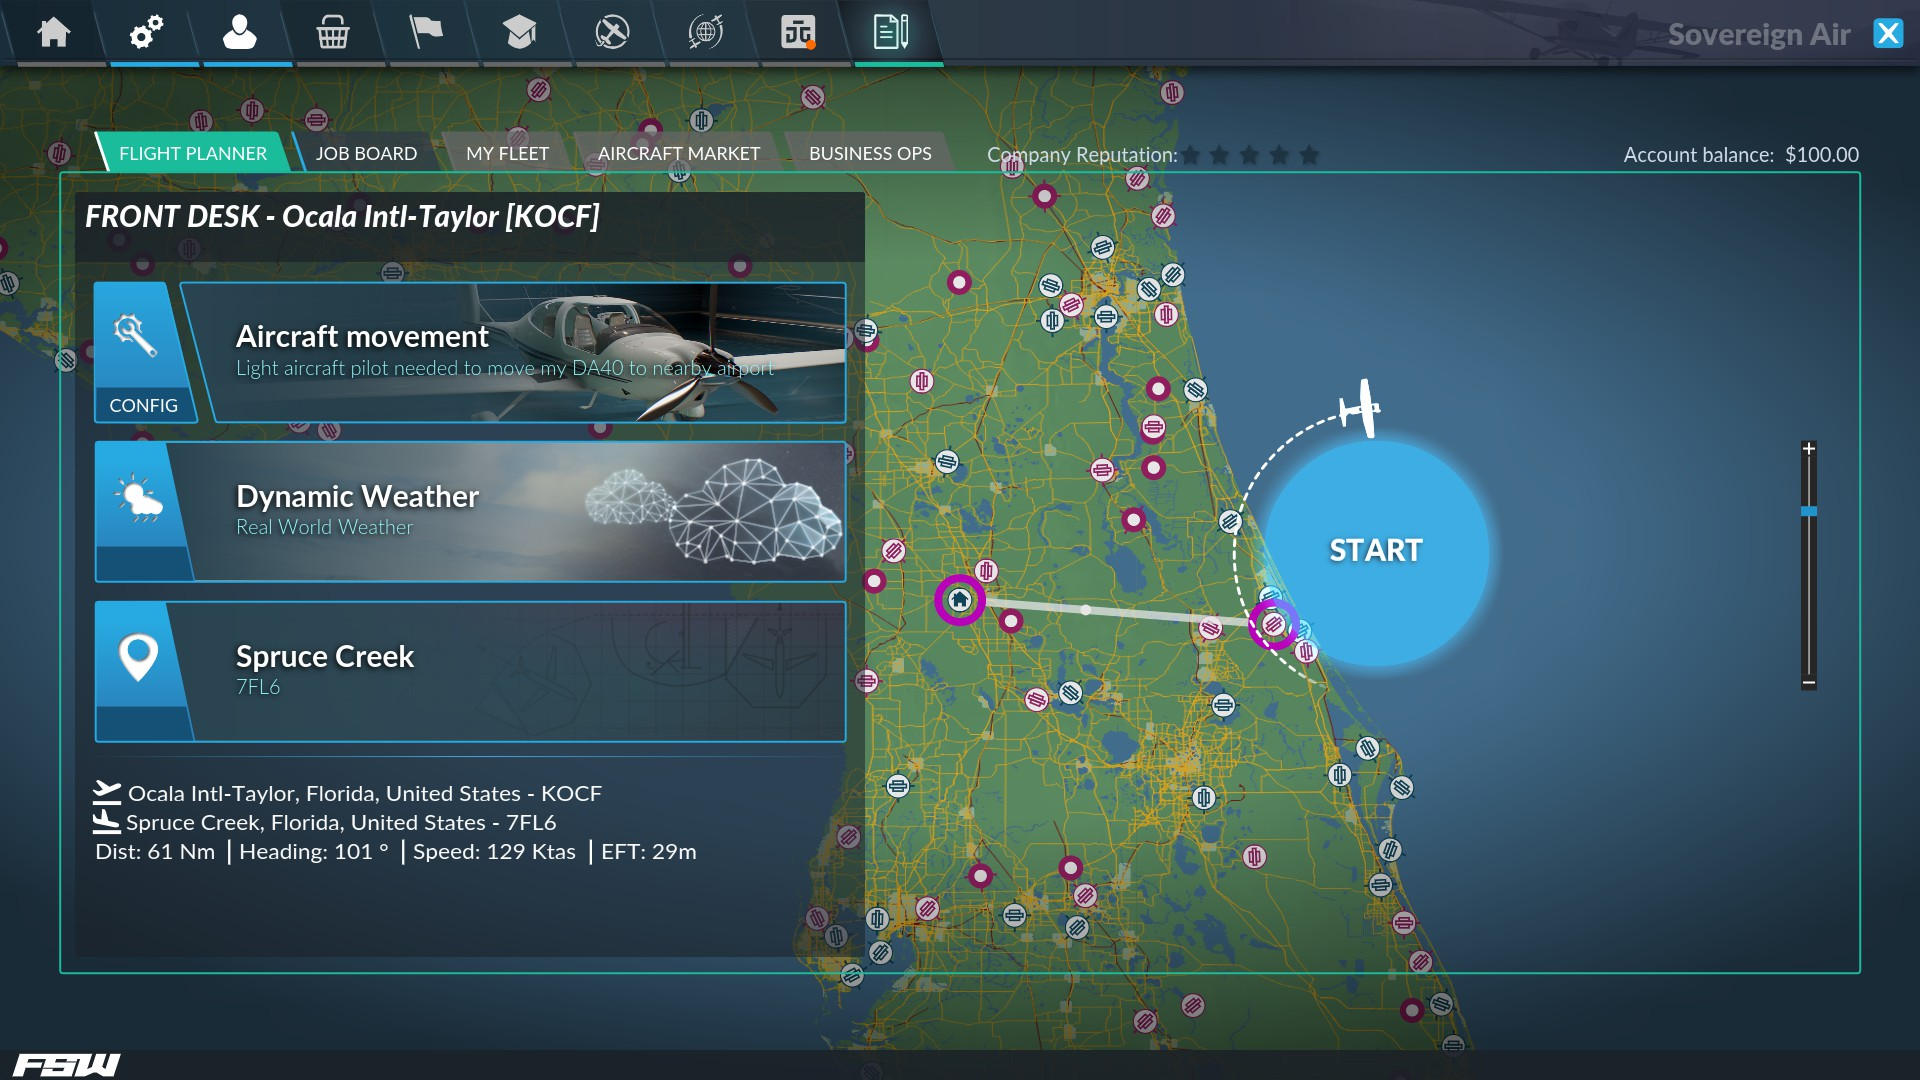 Career Mode flight planner